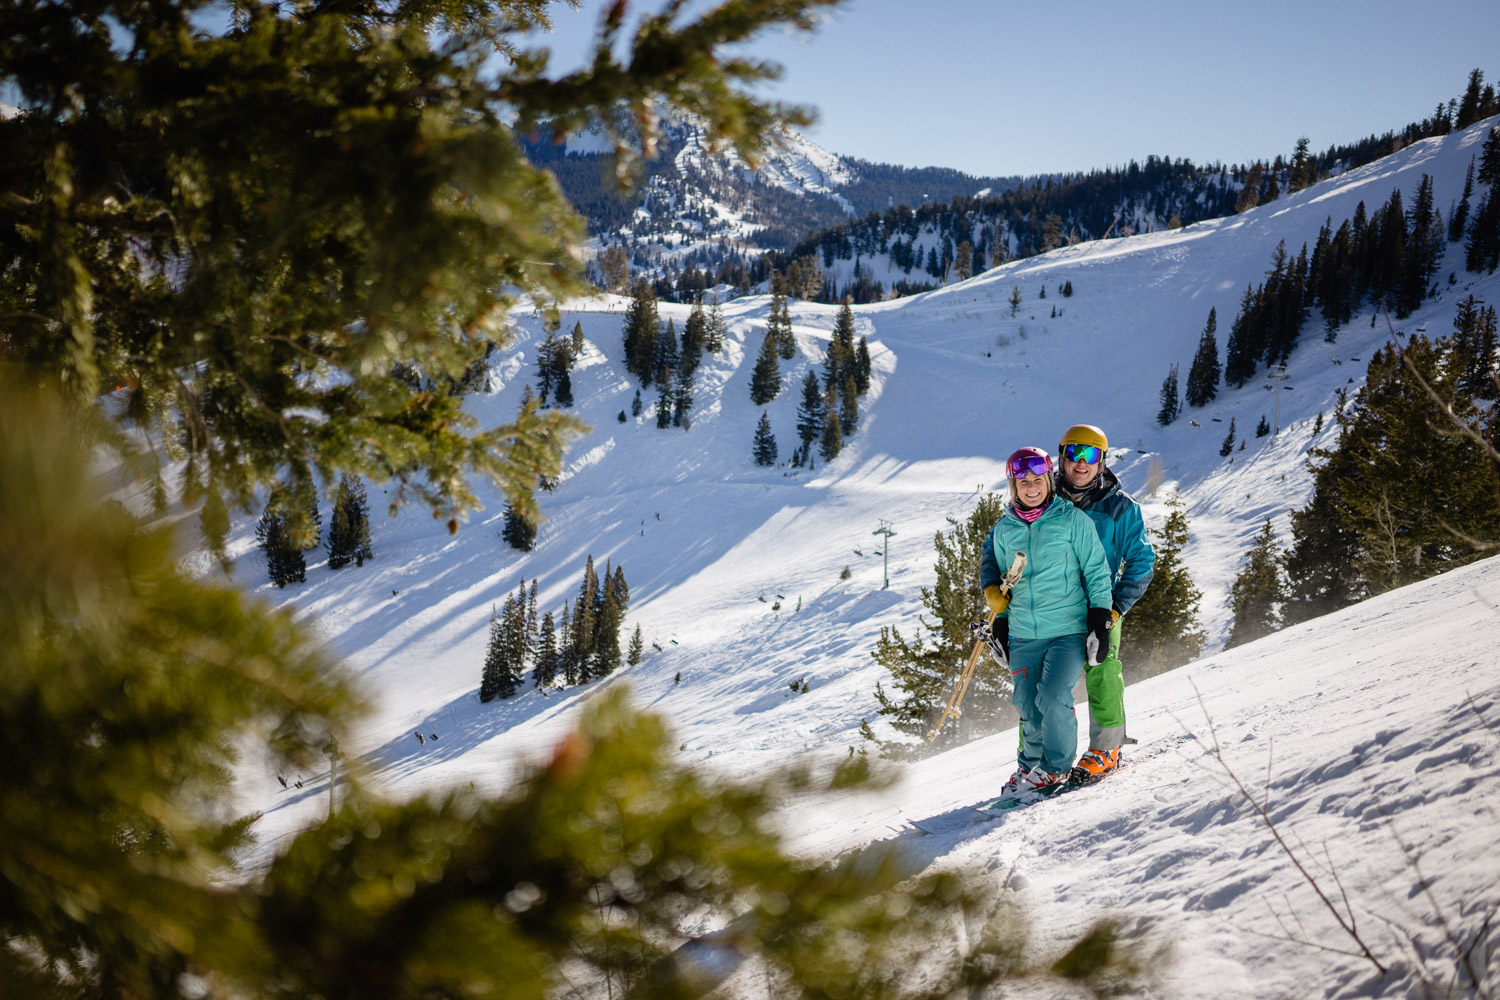 happy skiing couple on snowy mountain with trees